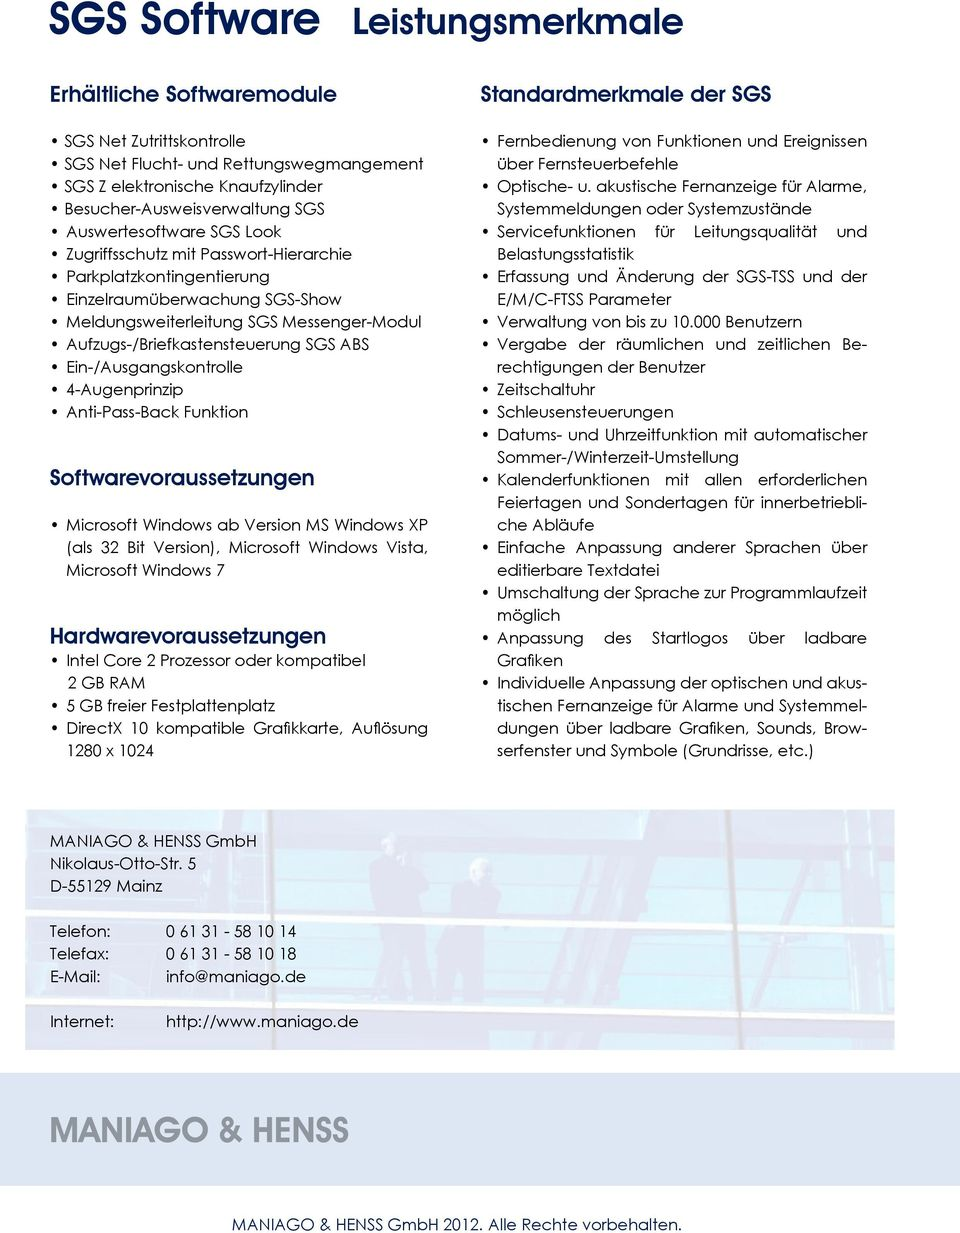 ABS Ein-/Ausgangskontrolle 4-Augenprinzip Anti-Pass-Back Funktion Softwarevoraussetzungen Microsoft Windows ab Version MS Windows XP (als 32 Bit Version), Microsoft Windows Vista, Microsoft Windows 7